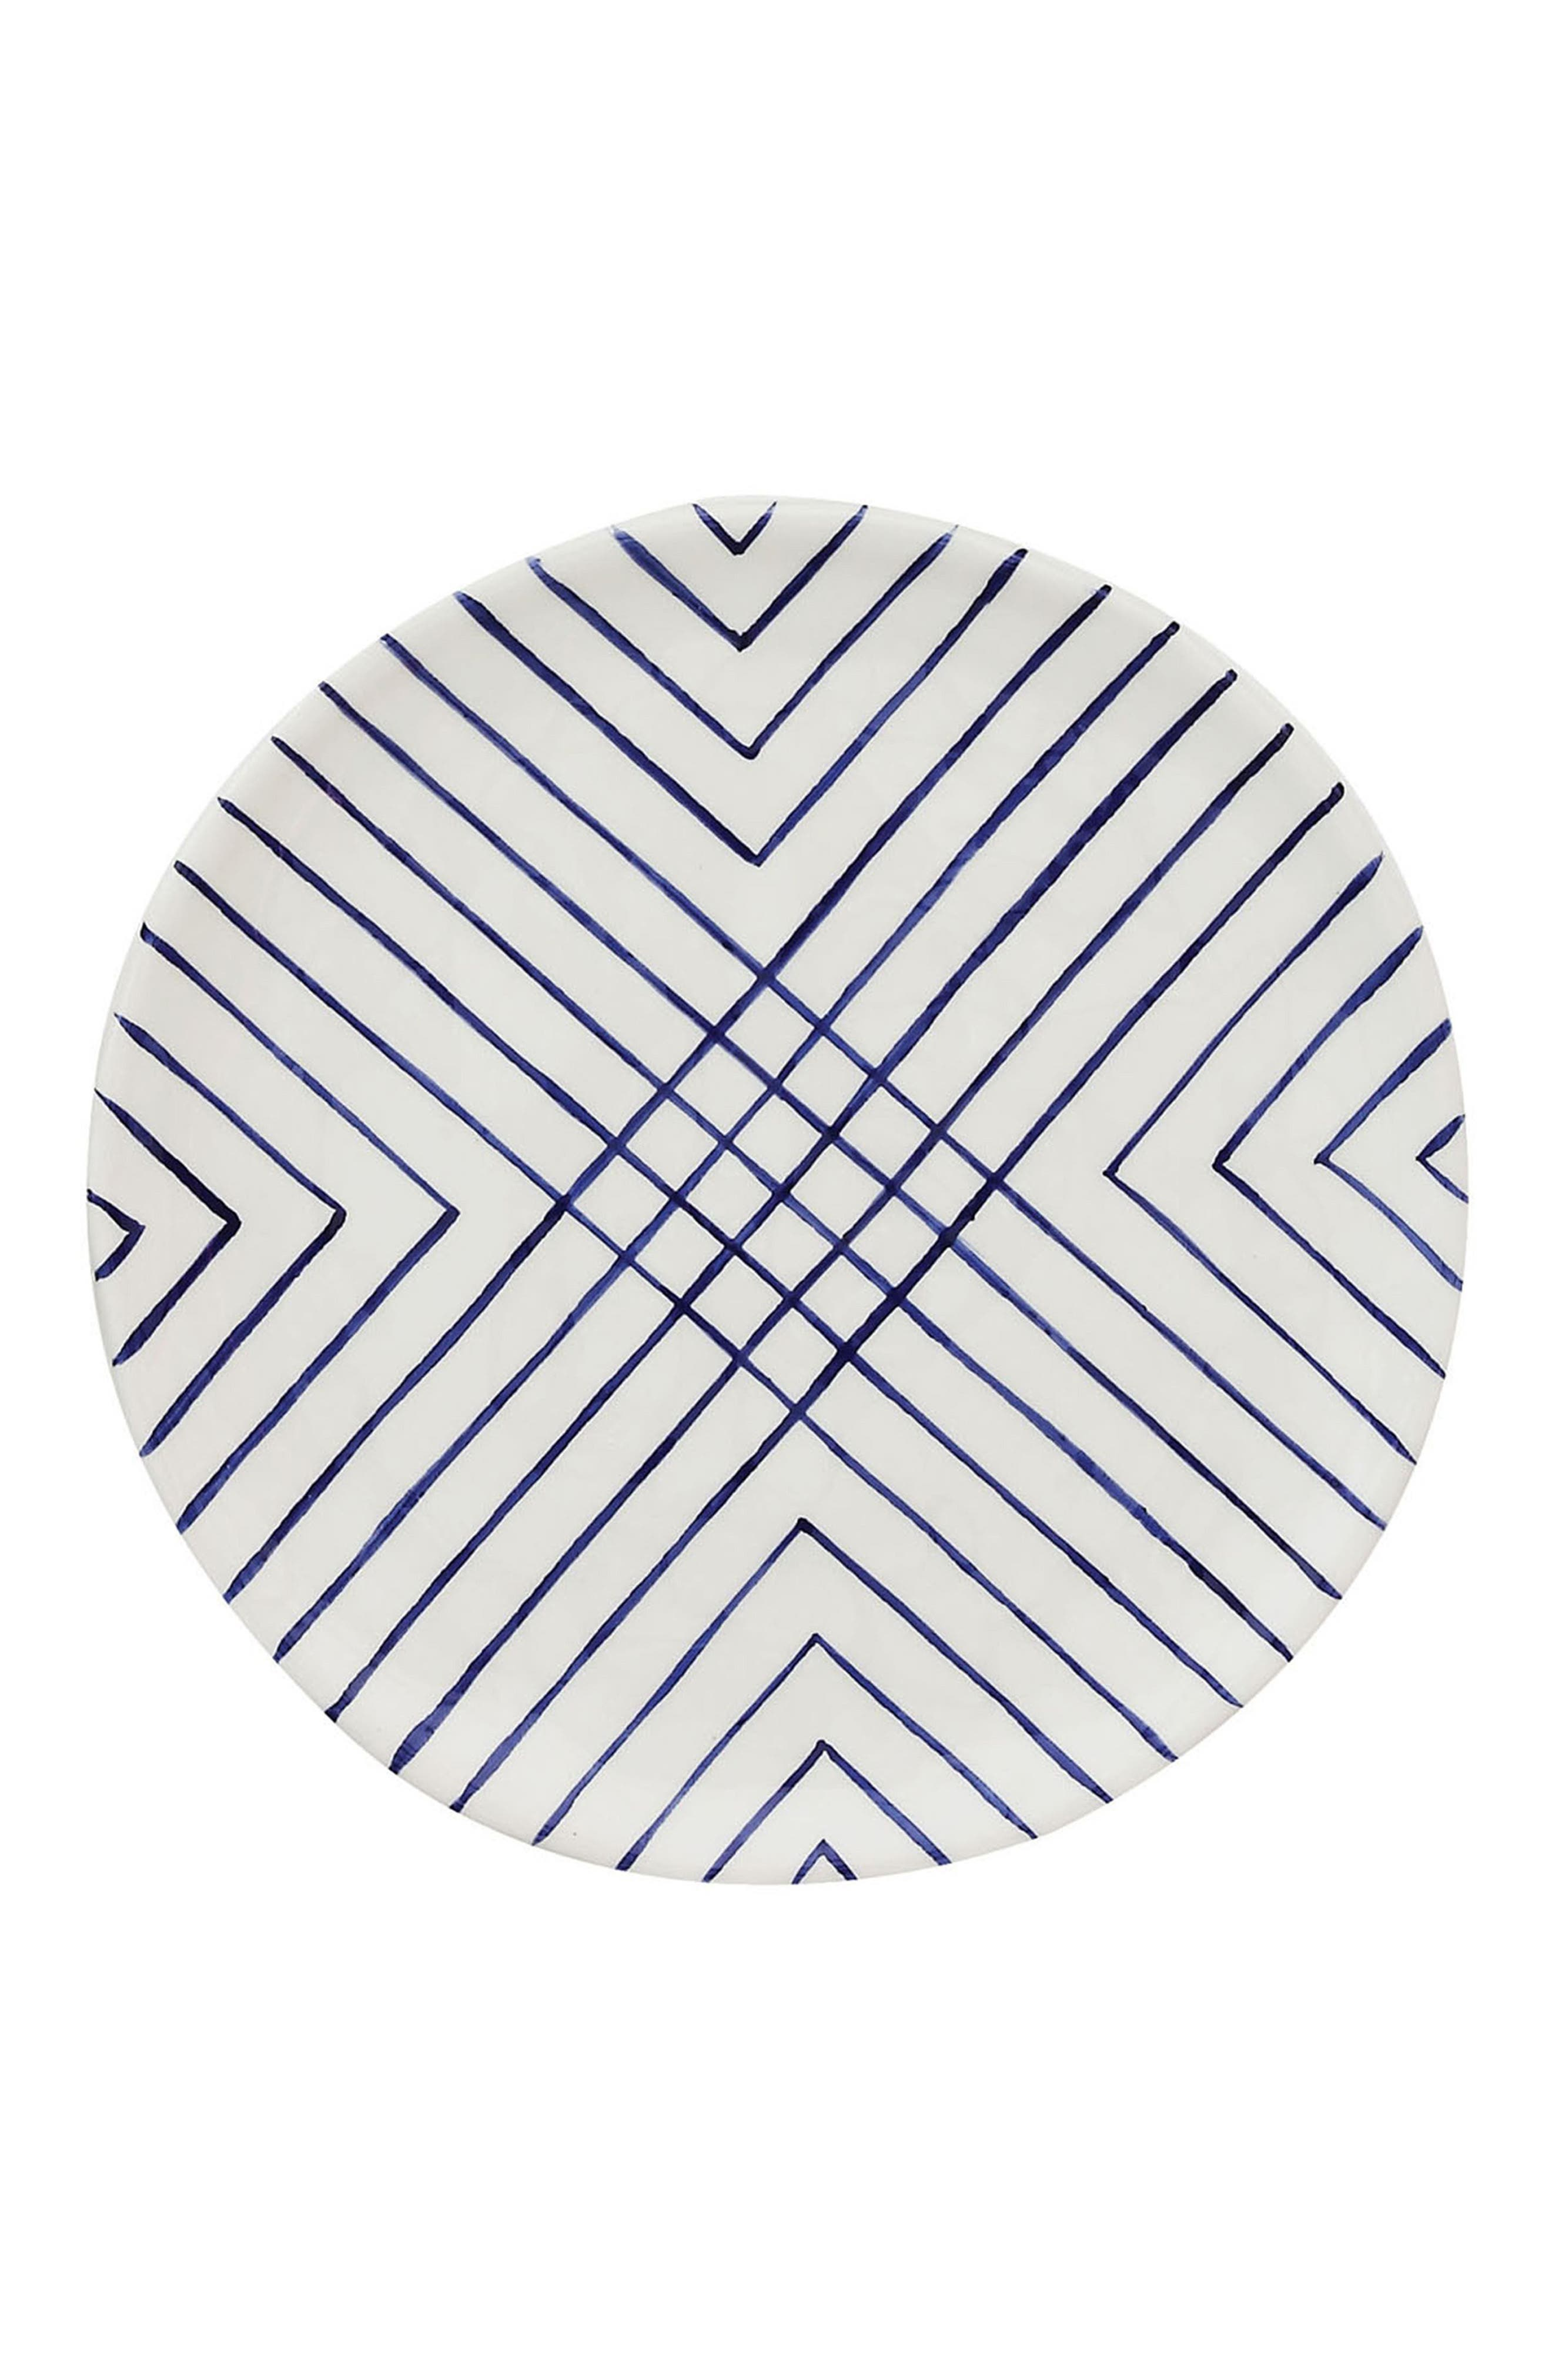 Main Image - Creative Co-Op Blue & White Plate